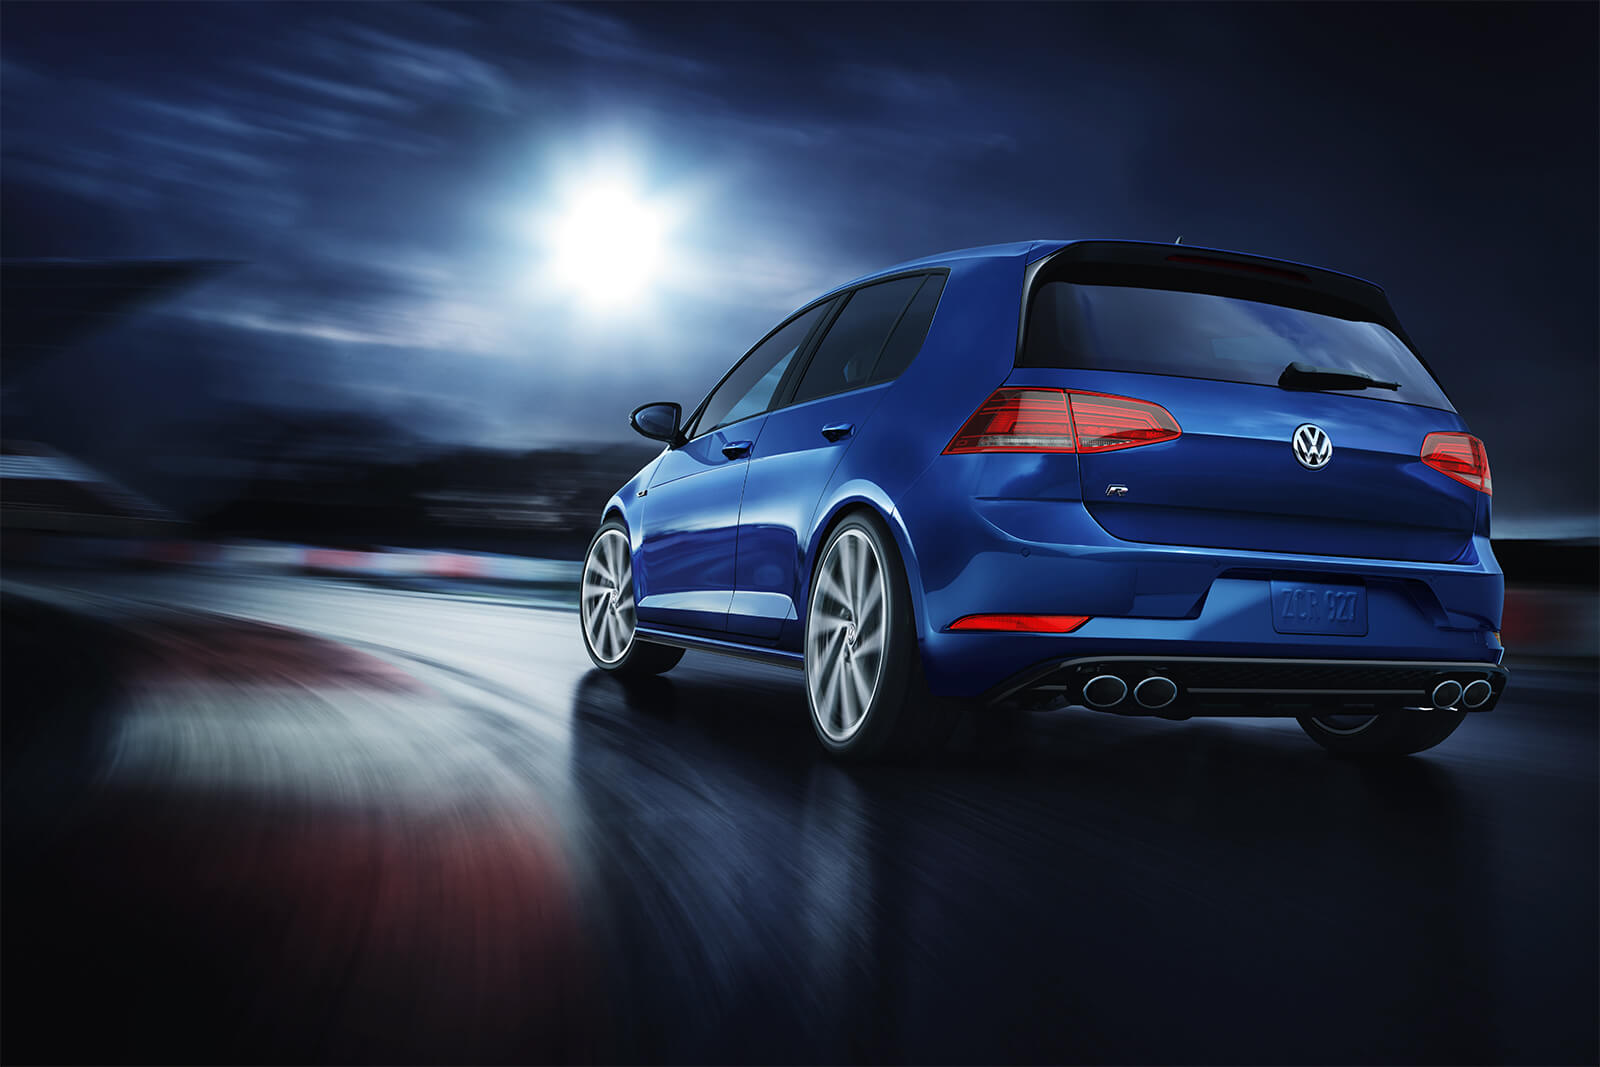 2019 Volkswagen Golf R Lapiz Blue Rear Exterior